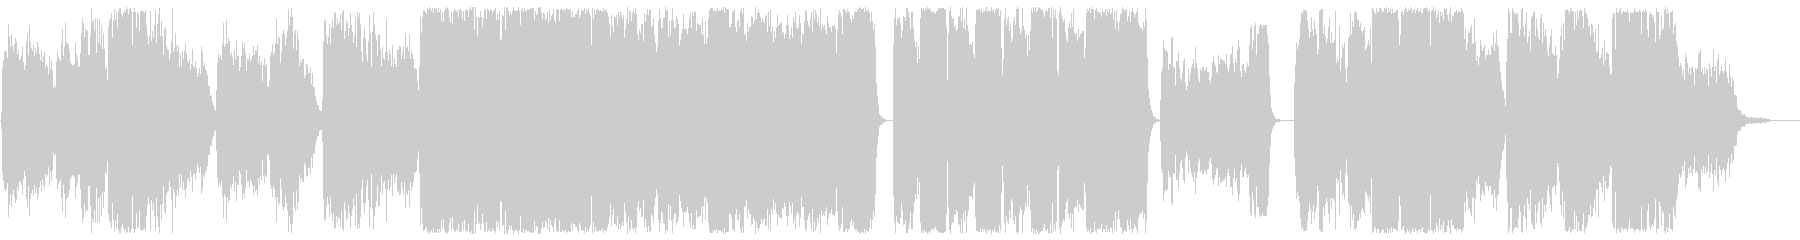 Mellow and melodic choir style BGM's unreproduced waveform